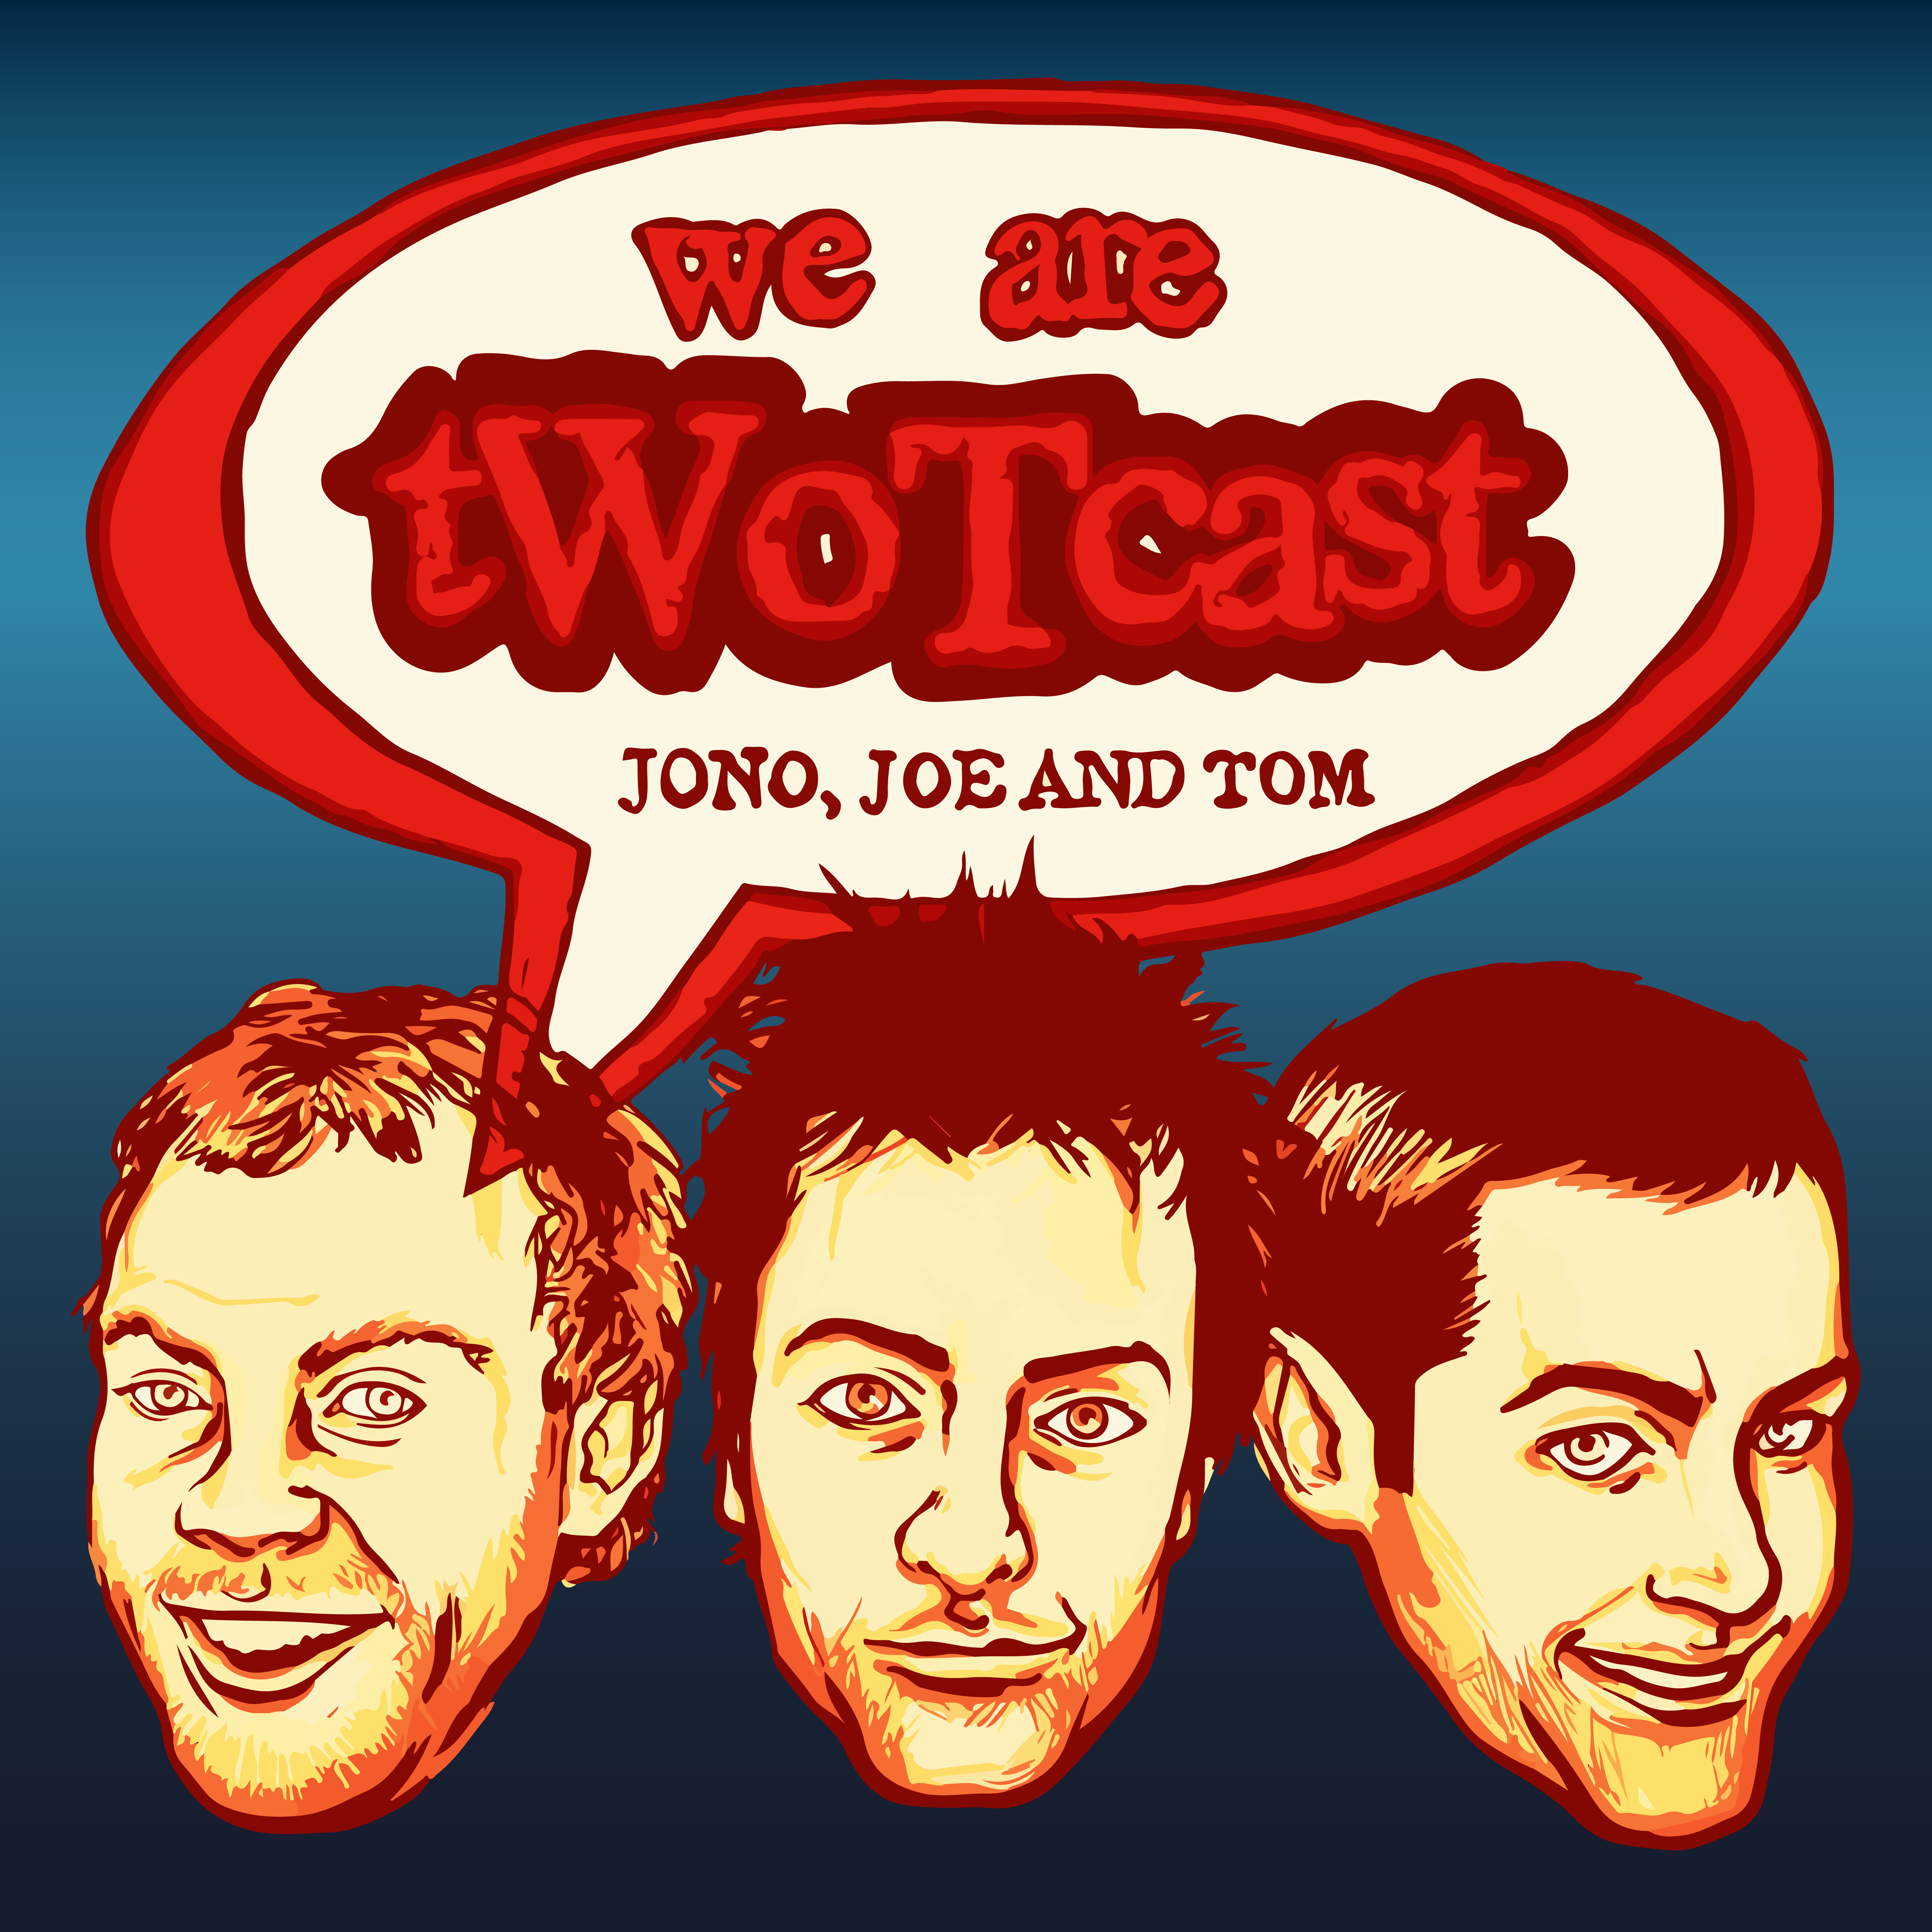 Artwork for tWoTcast episode 3